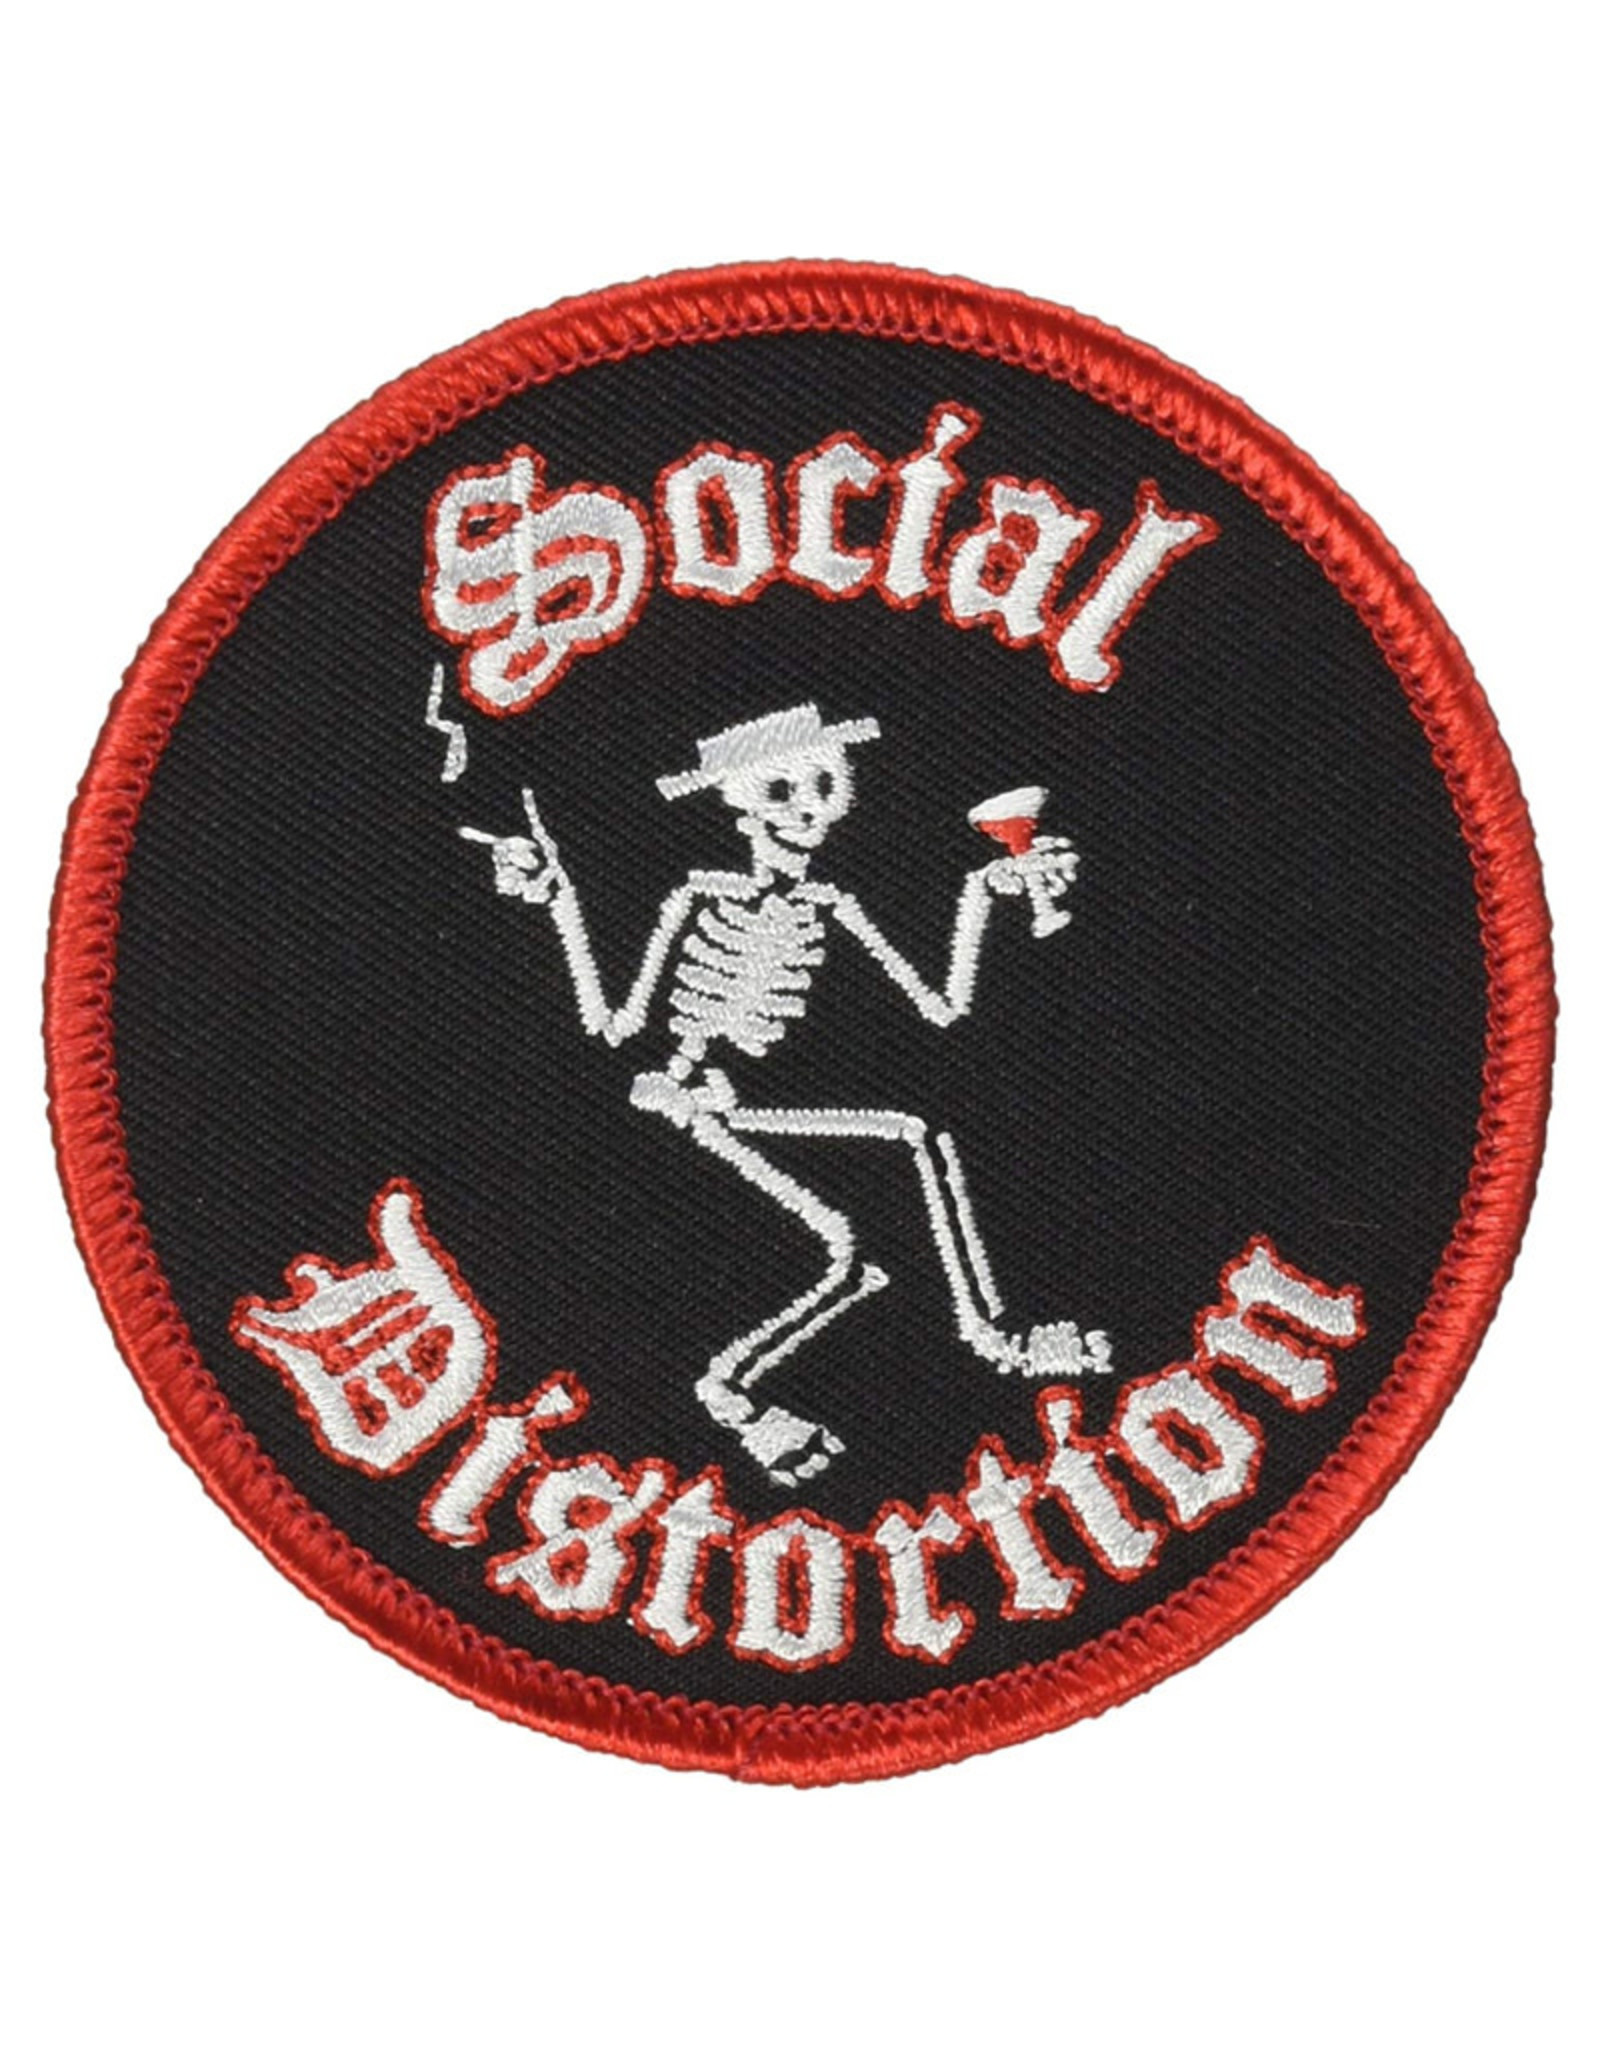 Star 500 Concert Series On Hollywood Patch Social Distortion Skelly